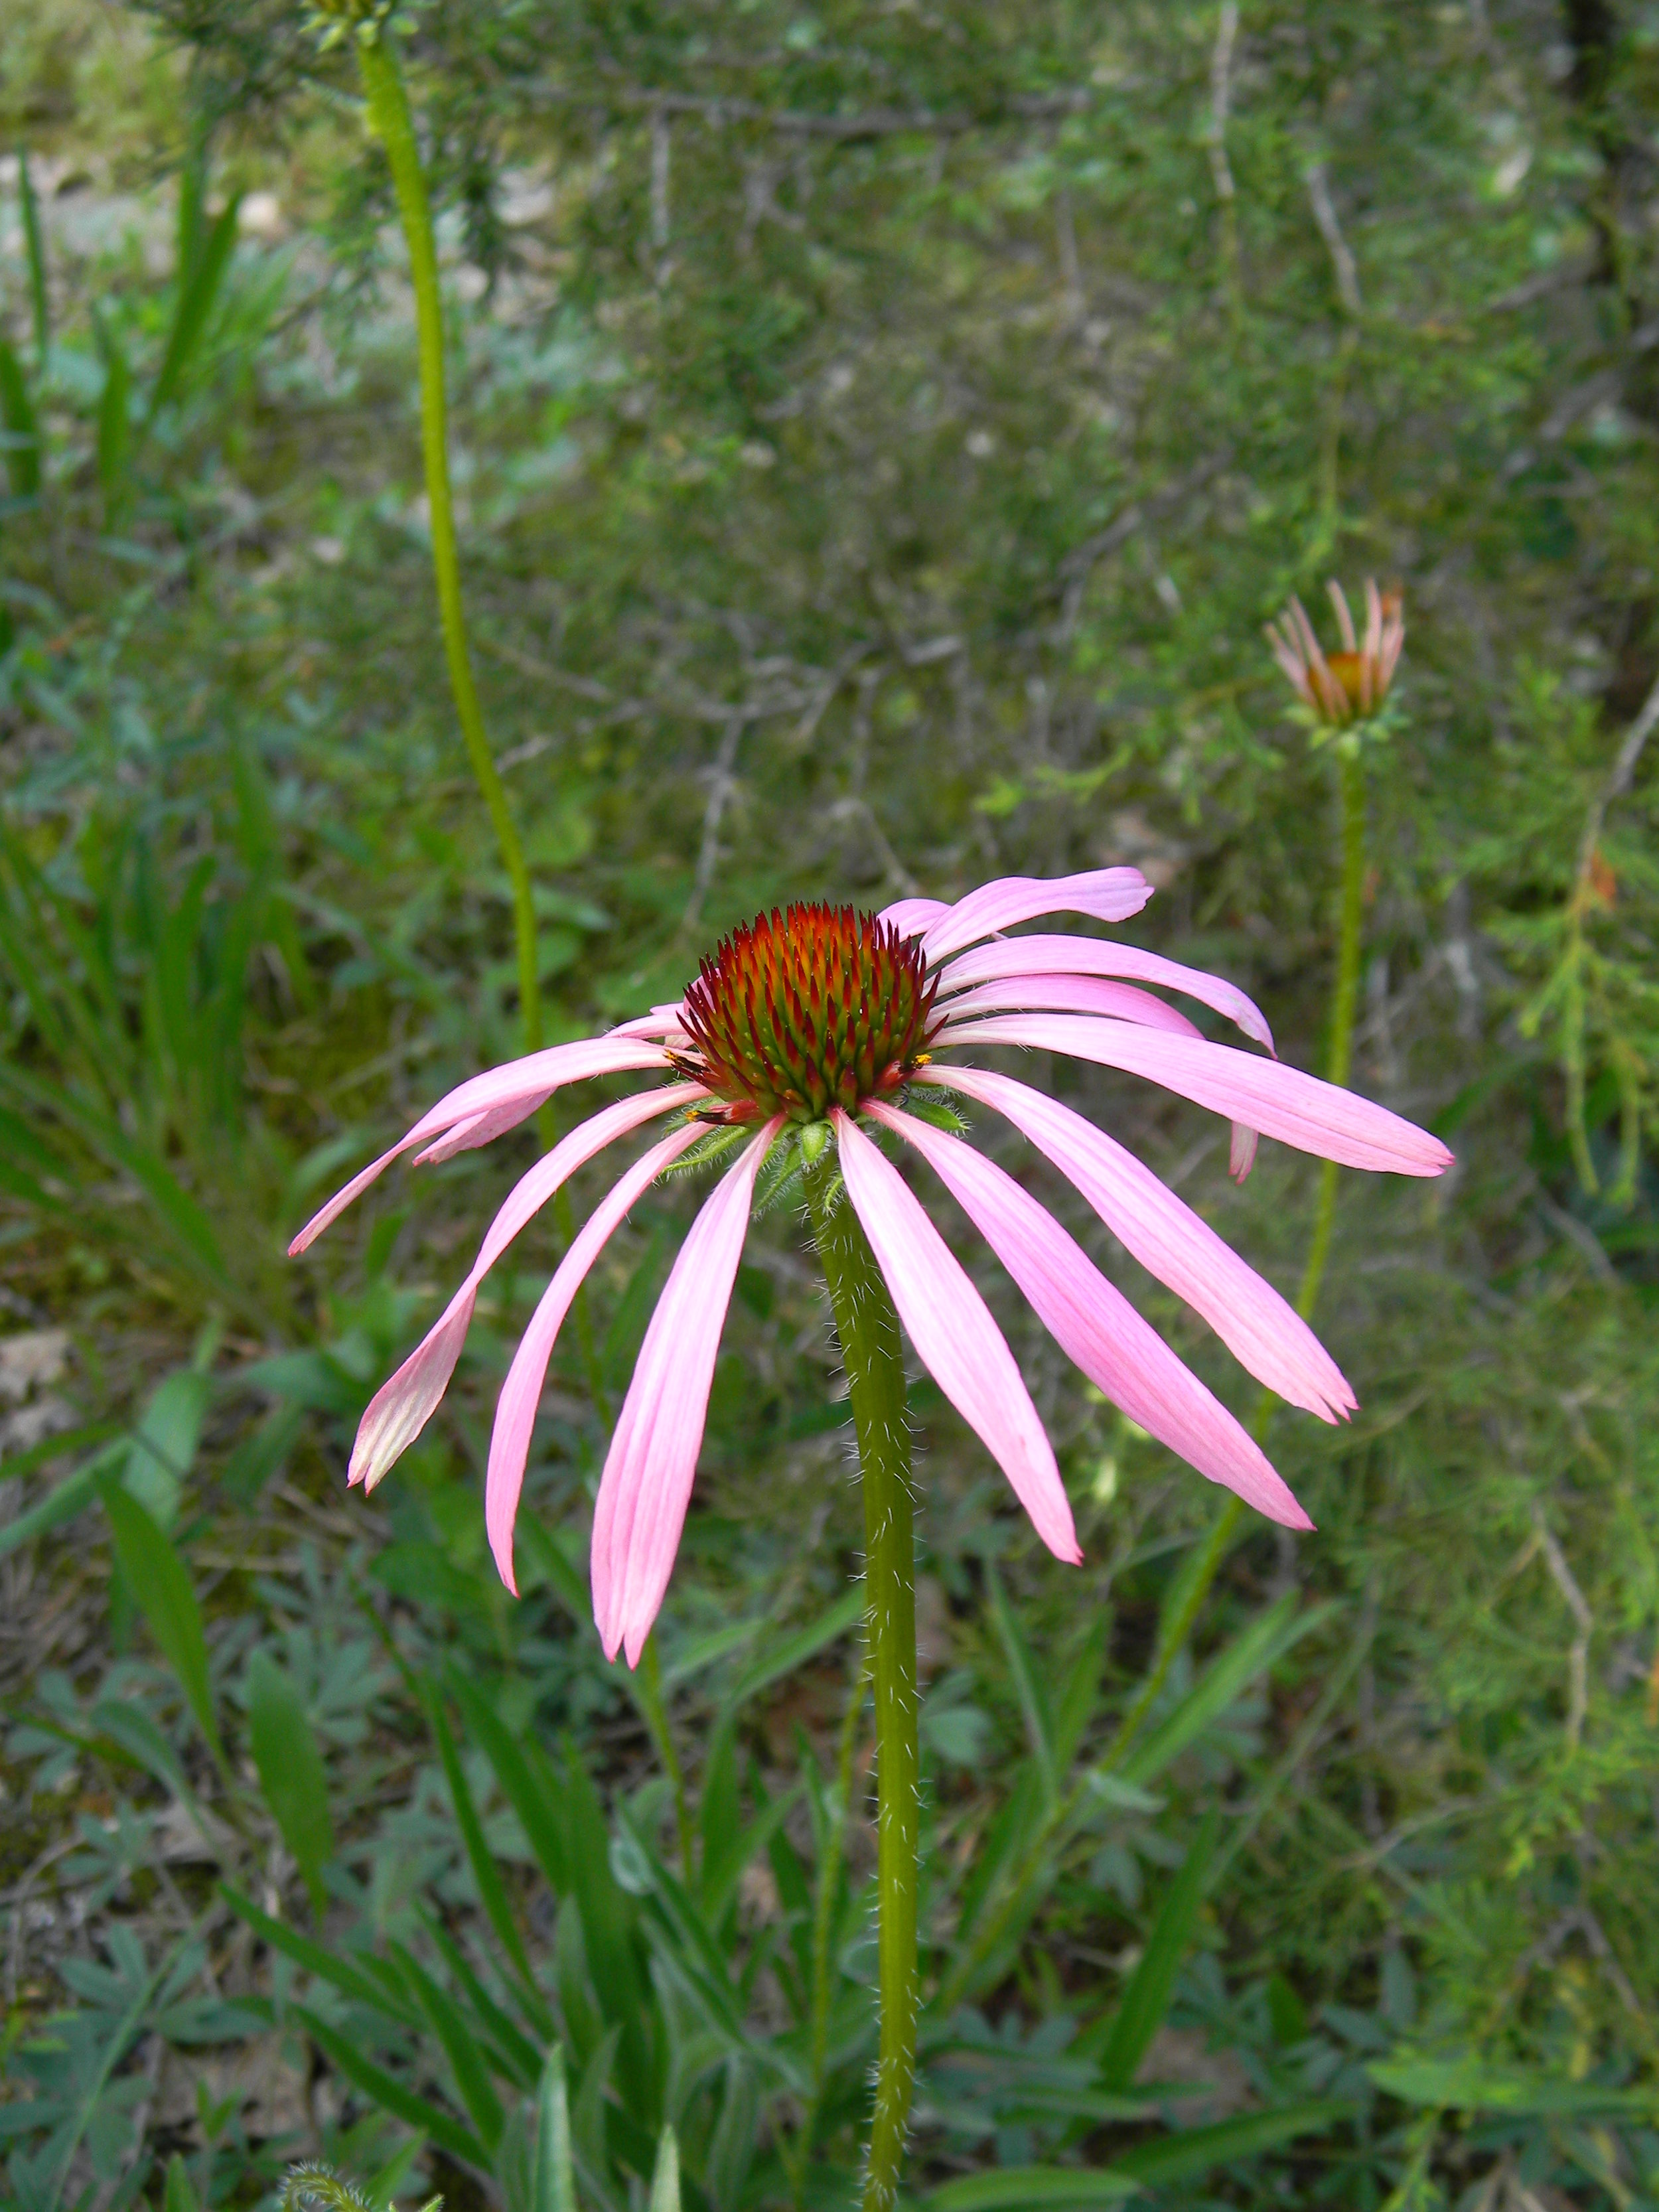 Wavy-leaved Purple Coneflower (Echinacea simulata) is a species that prefers glade margins and deeper soiled areas. Photo credit: Dwayne Estes.